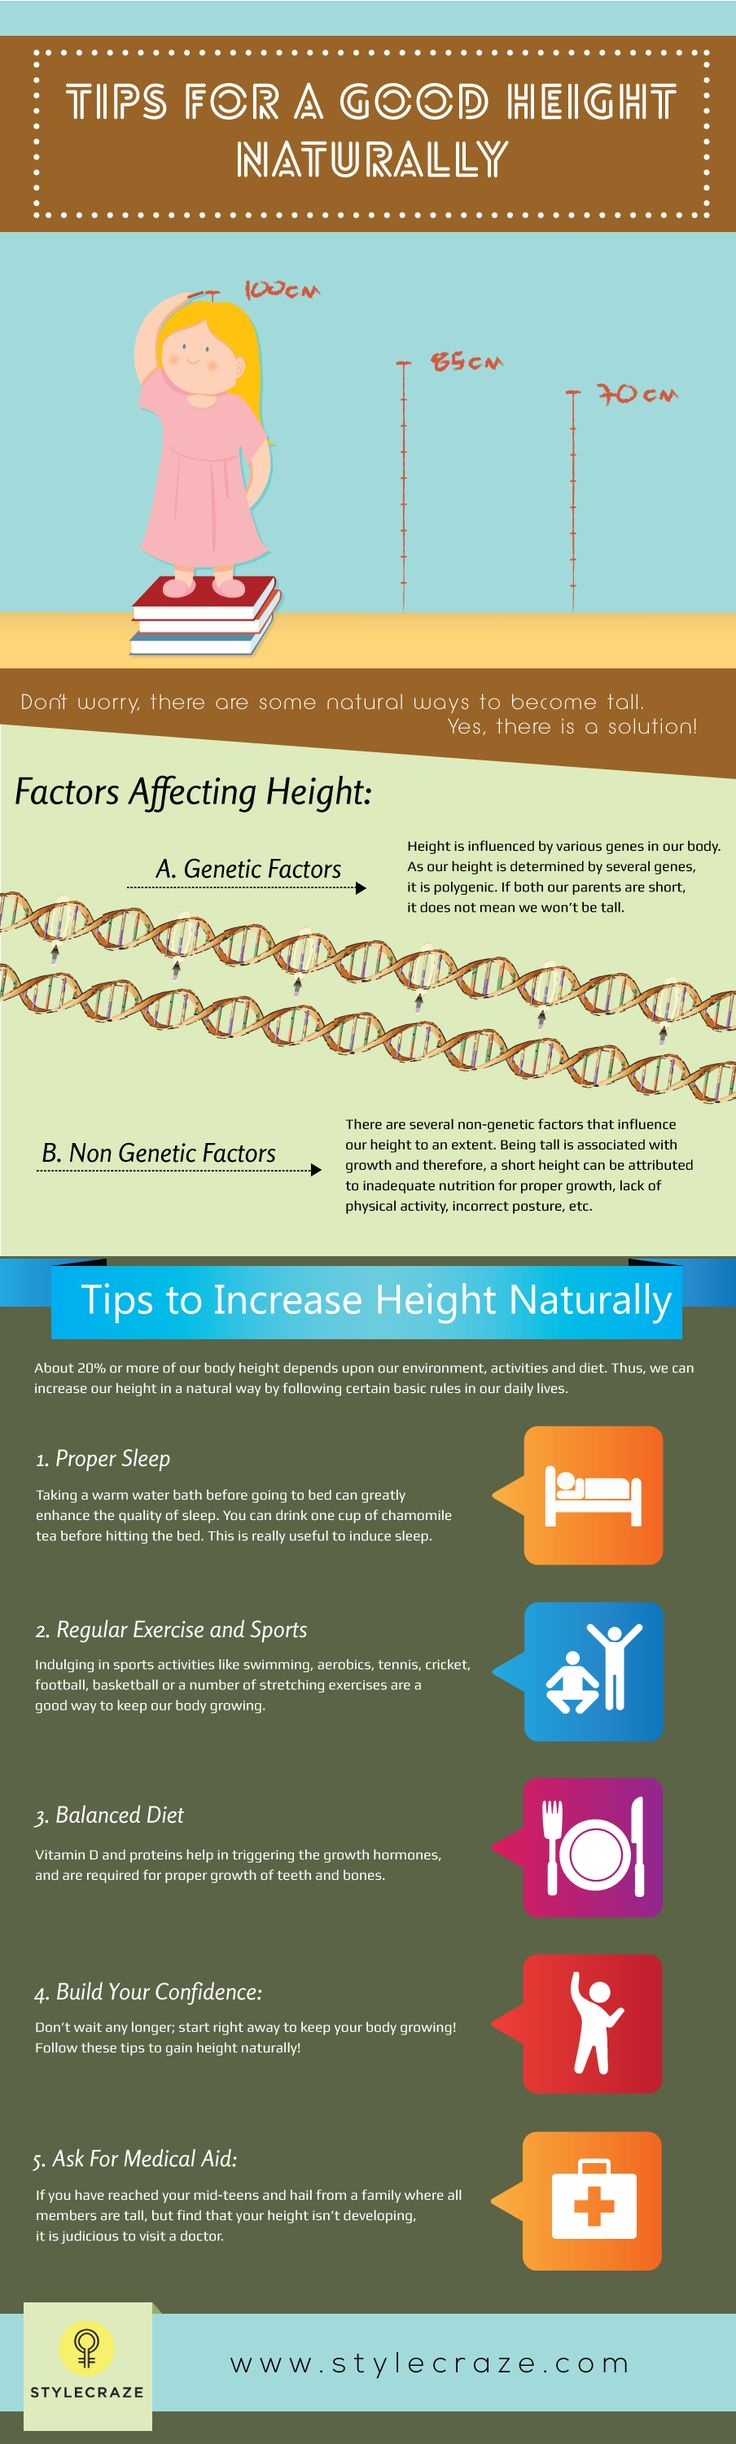 9 Simple Tips To Increase Height Naturally #Nutrition